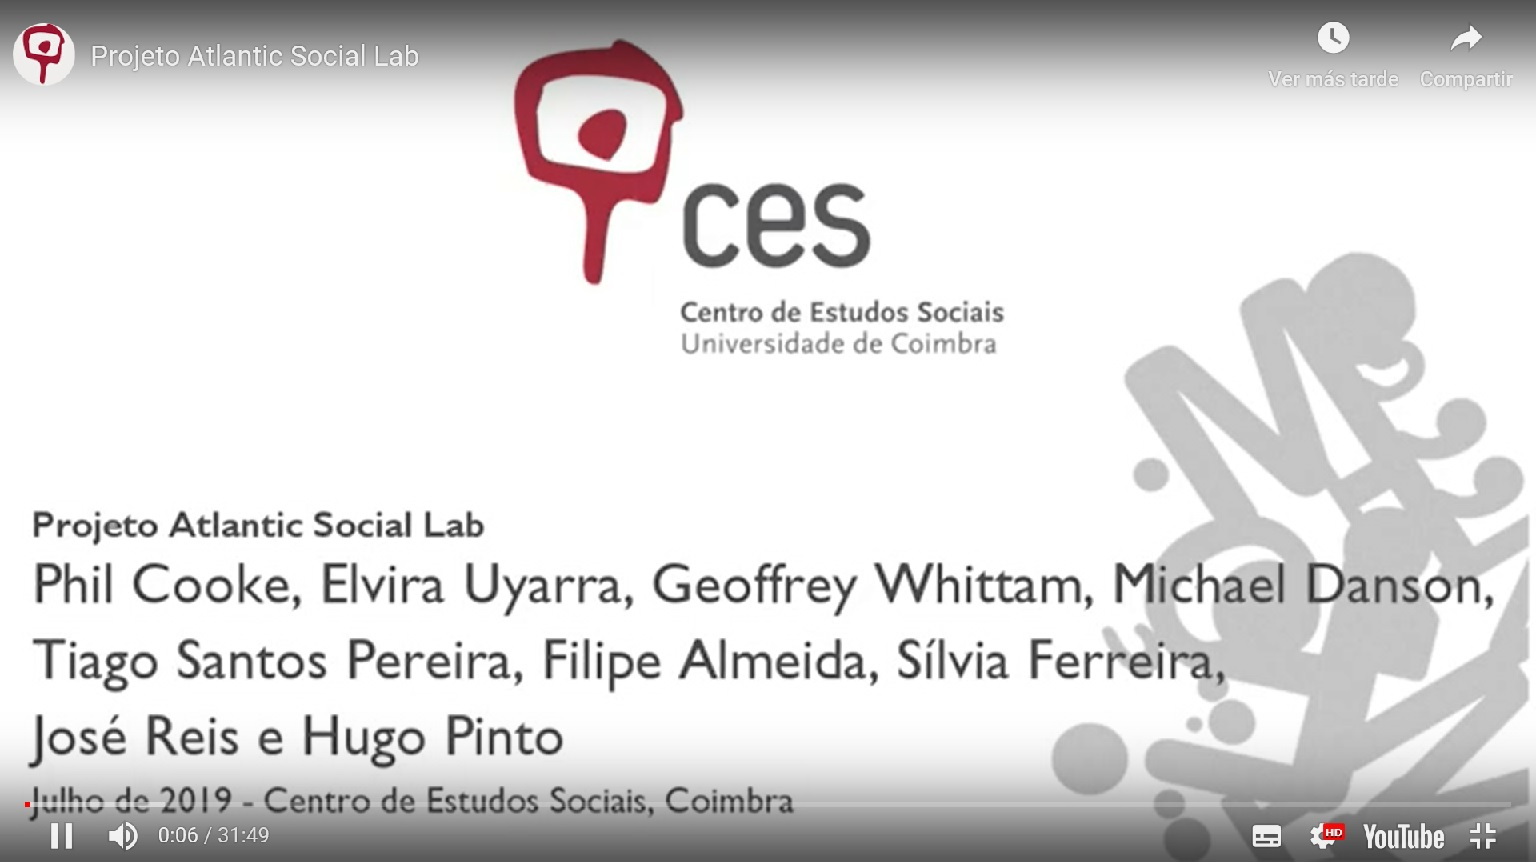 "Video recorded by CES Coimbra partner in the framework of the International Workshop ""Social Innovation and the Role of the State"""